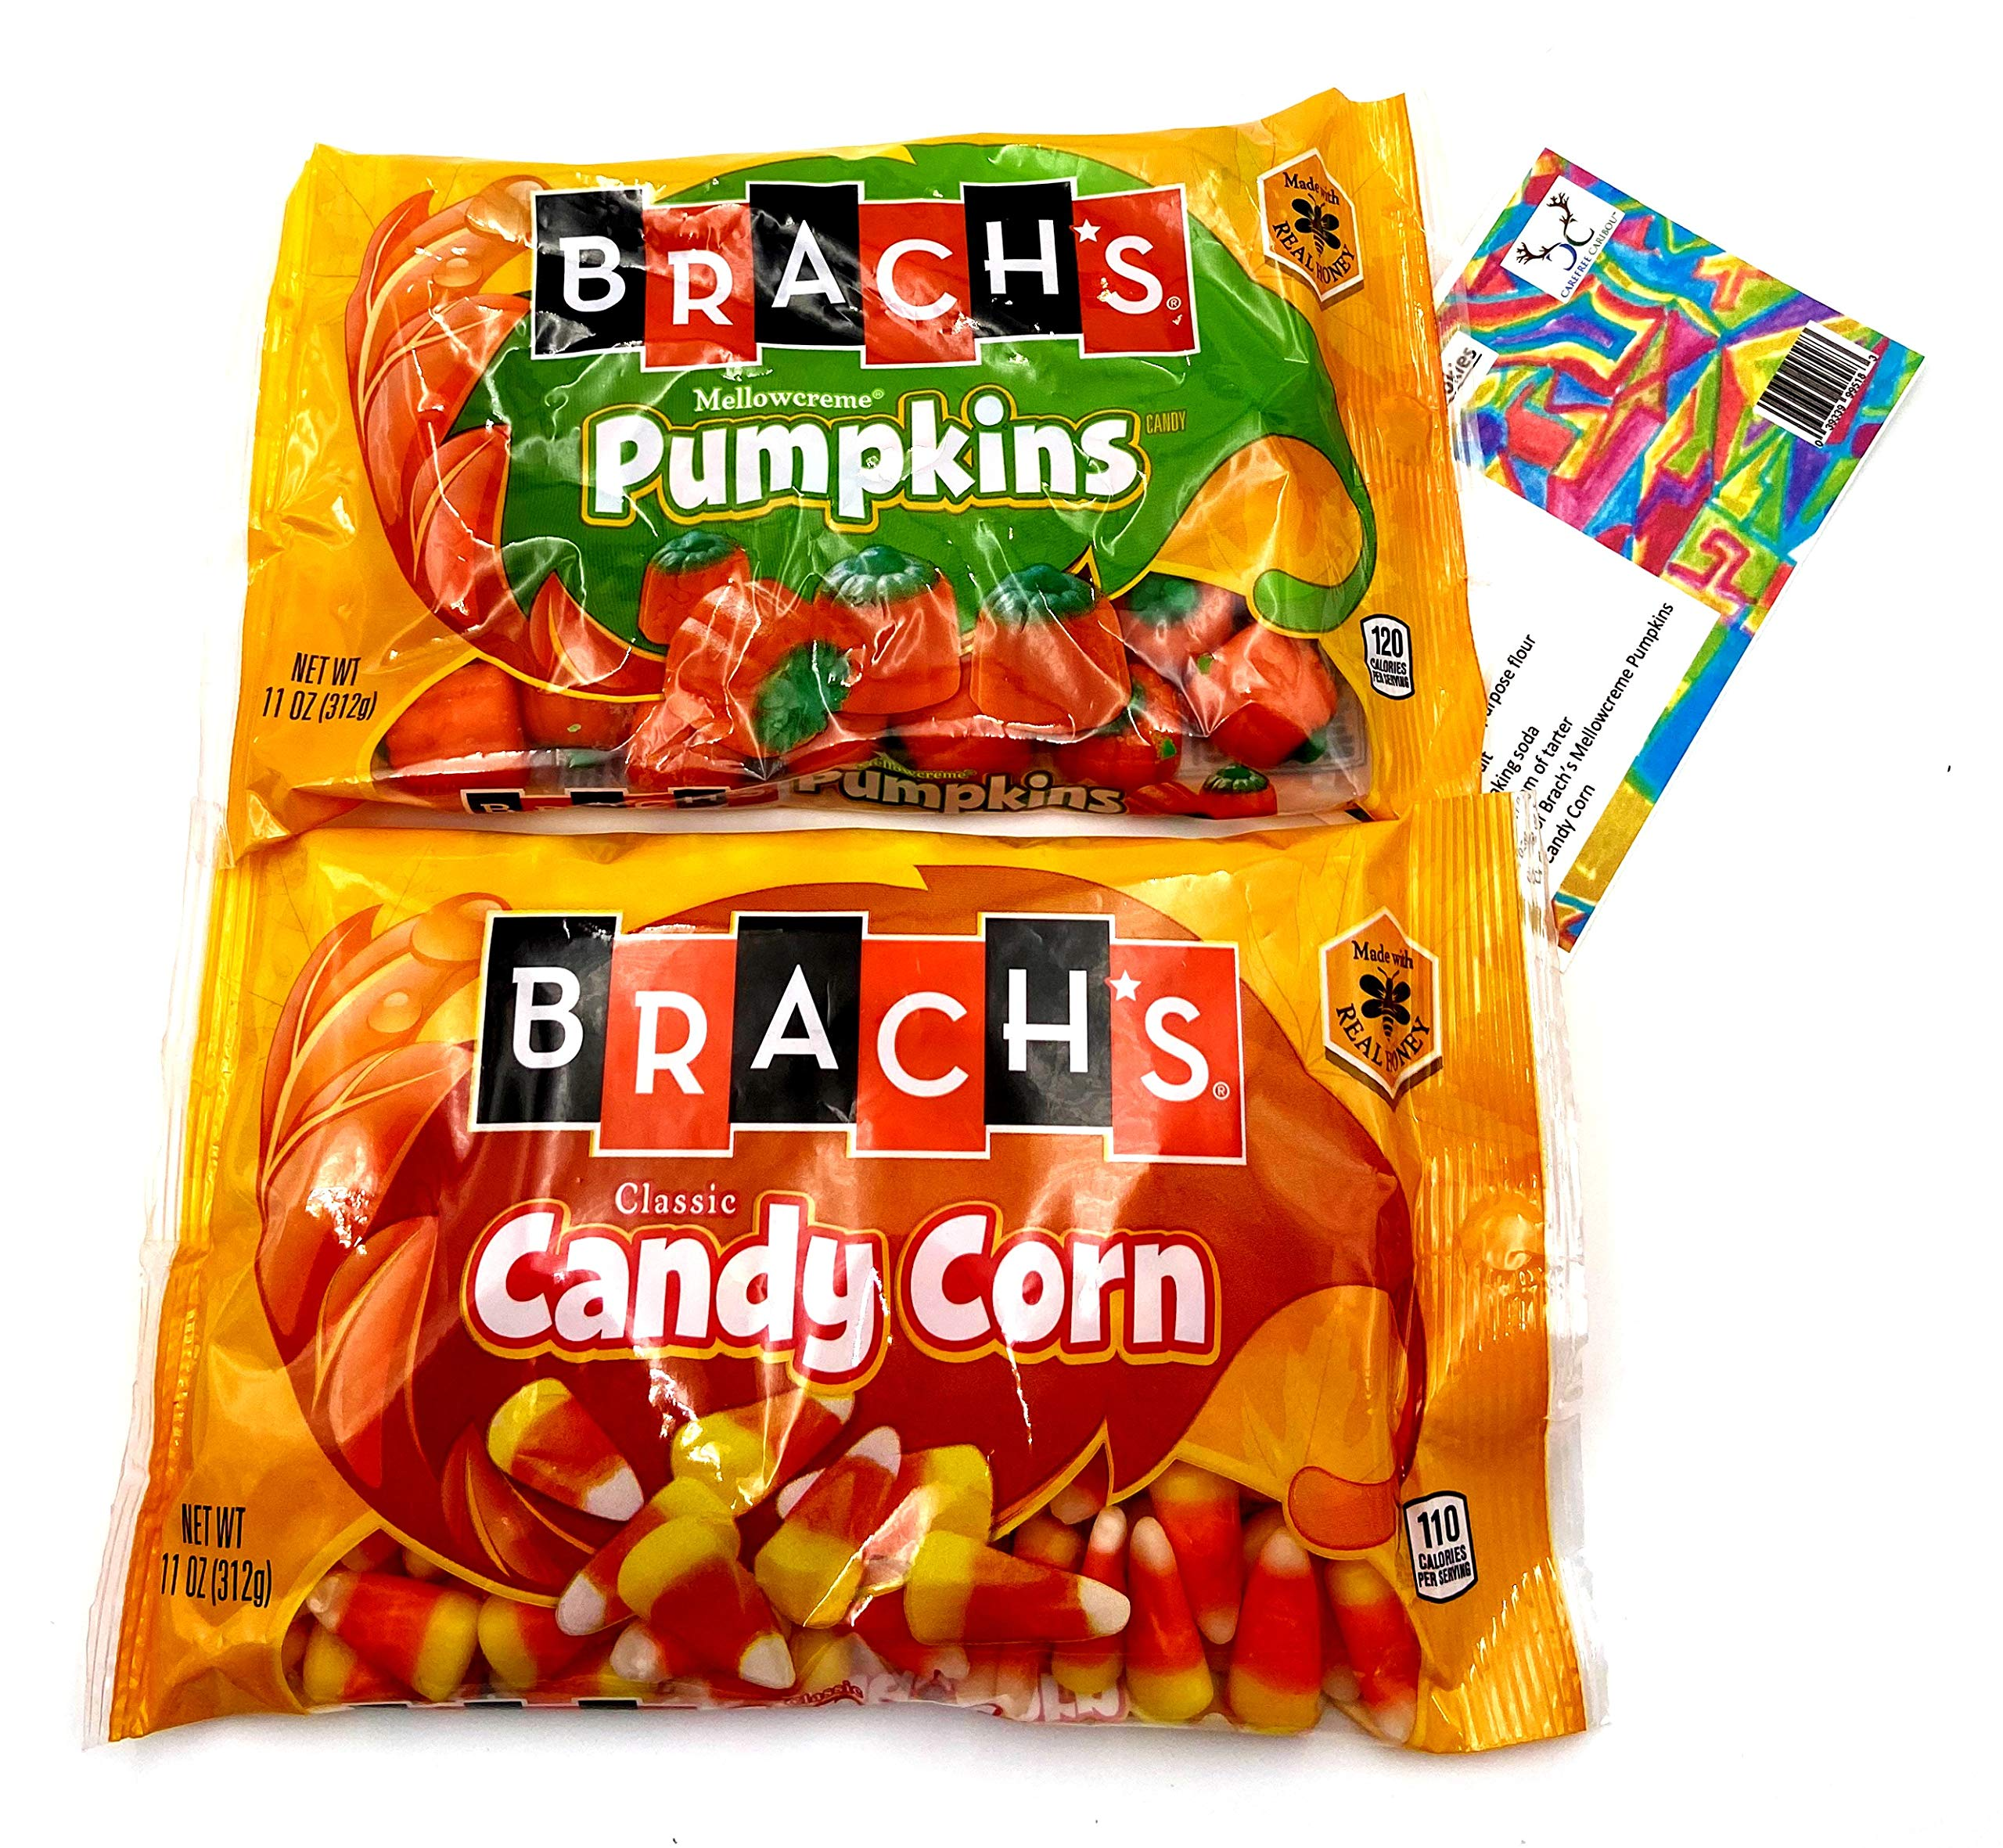 Brachs Candy Corn Bundle. One Bag of Brachs 11oz Candy Corn & One Bag of Brachs 11oz Mellowcreme Pumpkins with a Recipe Card from Carefree Caribou. Two of Brachs Holiday Candy Favorites!